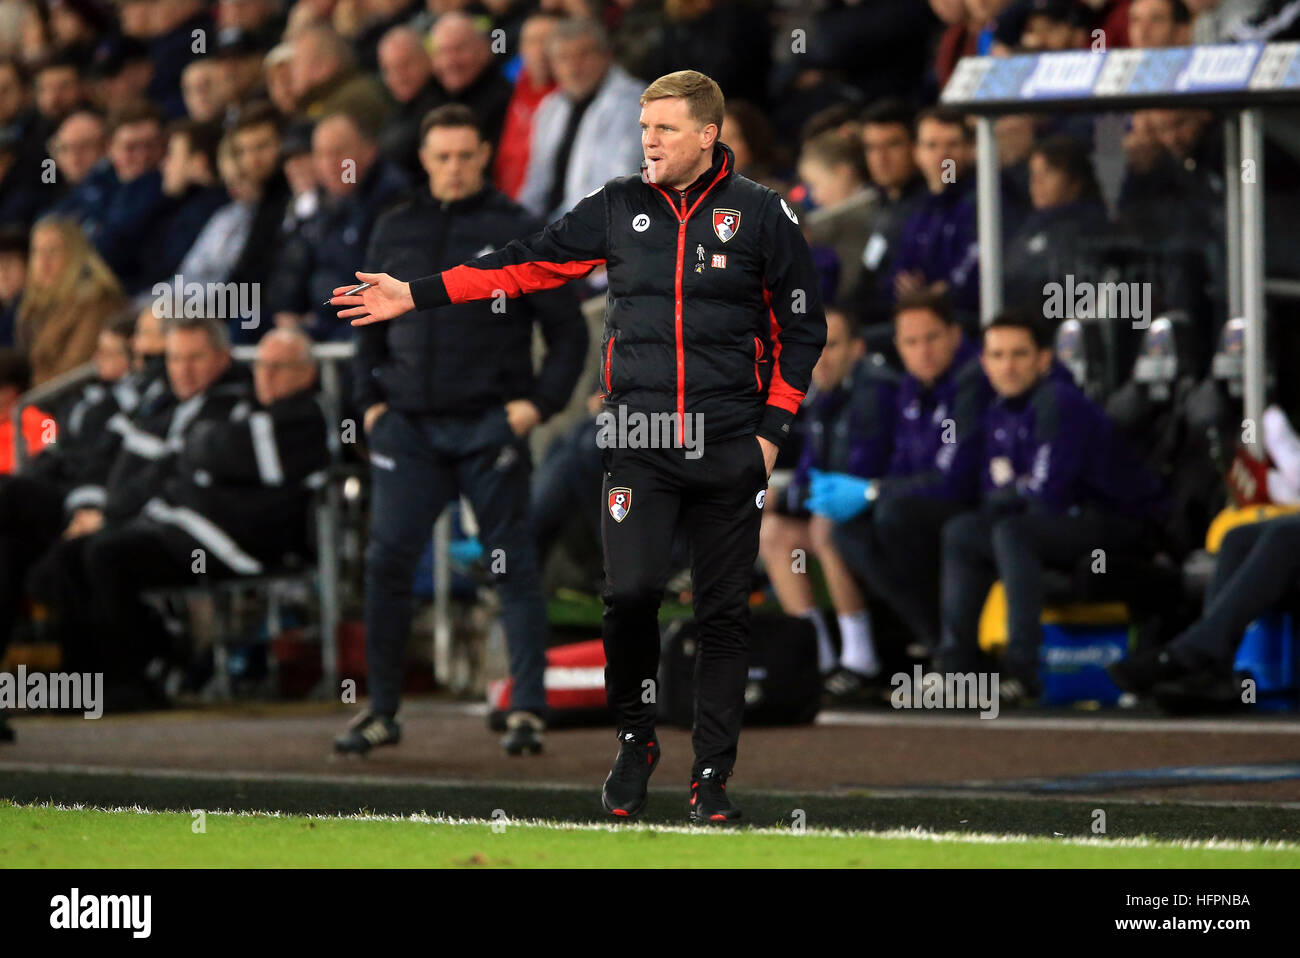 Afc Bournemouth Manager Eddie Howe Stock Photos Afc Bournemouth